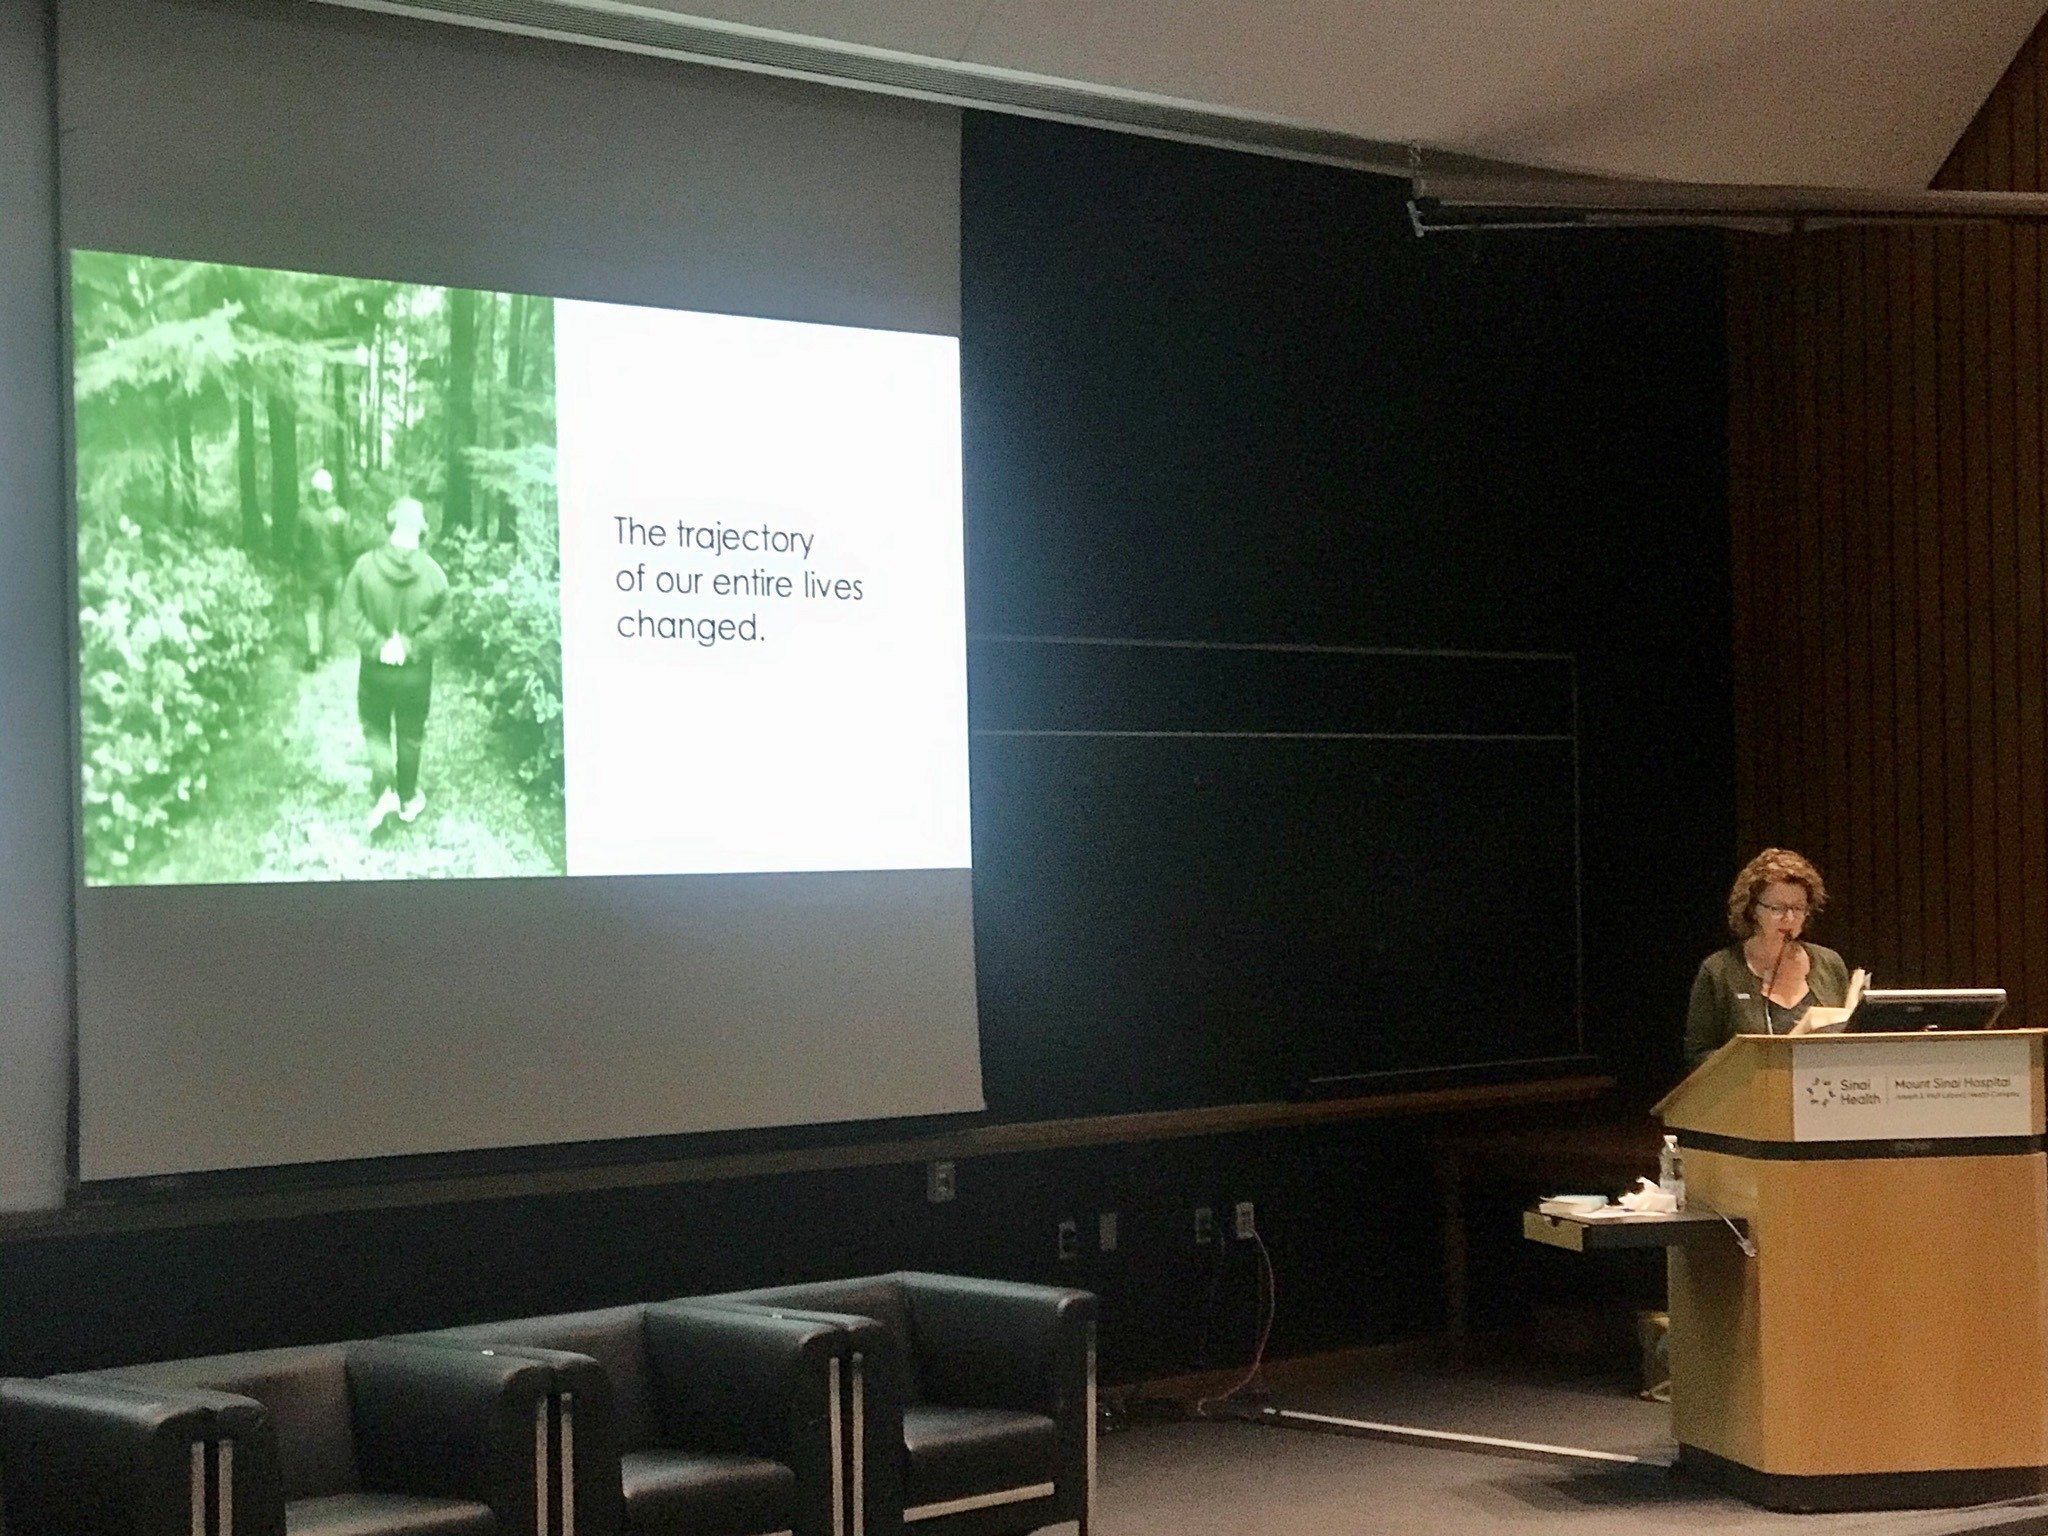 Sue Robins speaking at Mount Sinai's auditorium